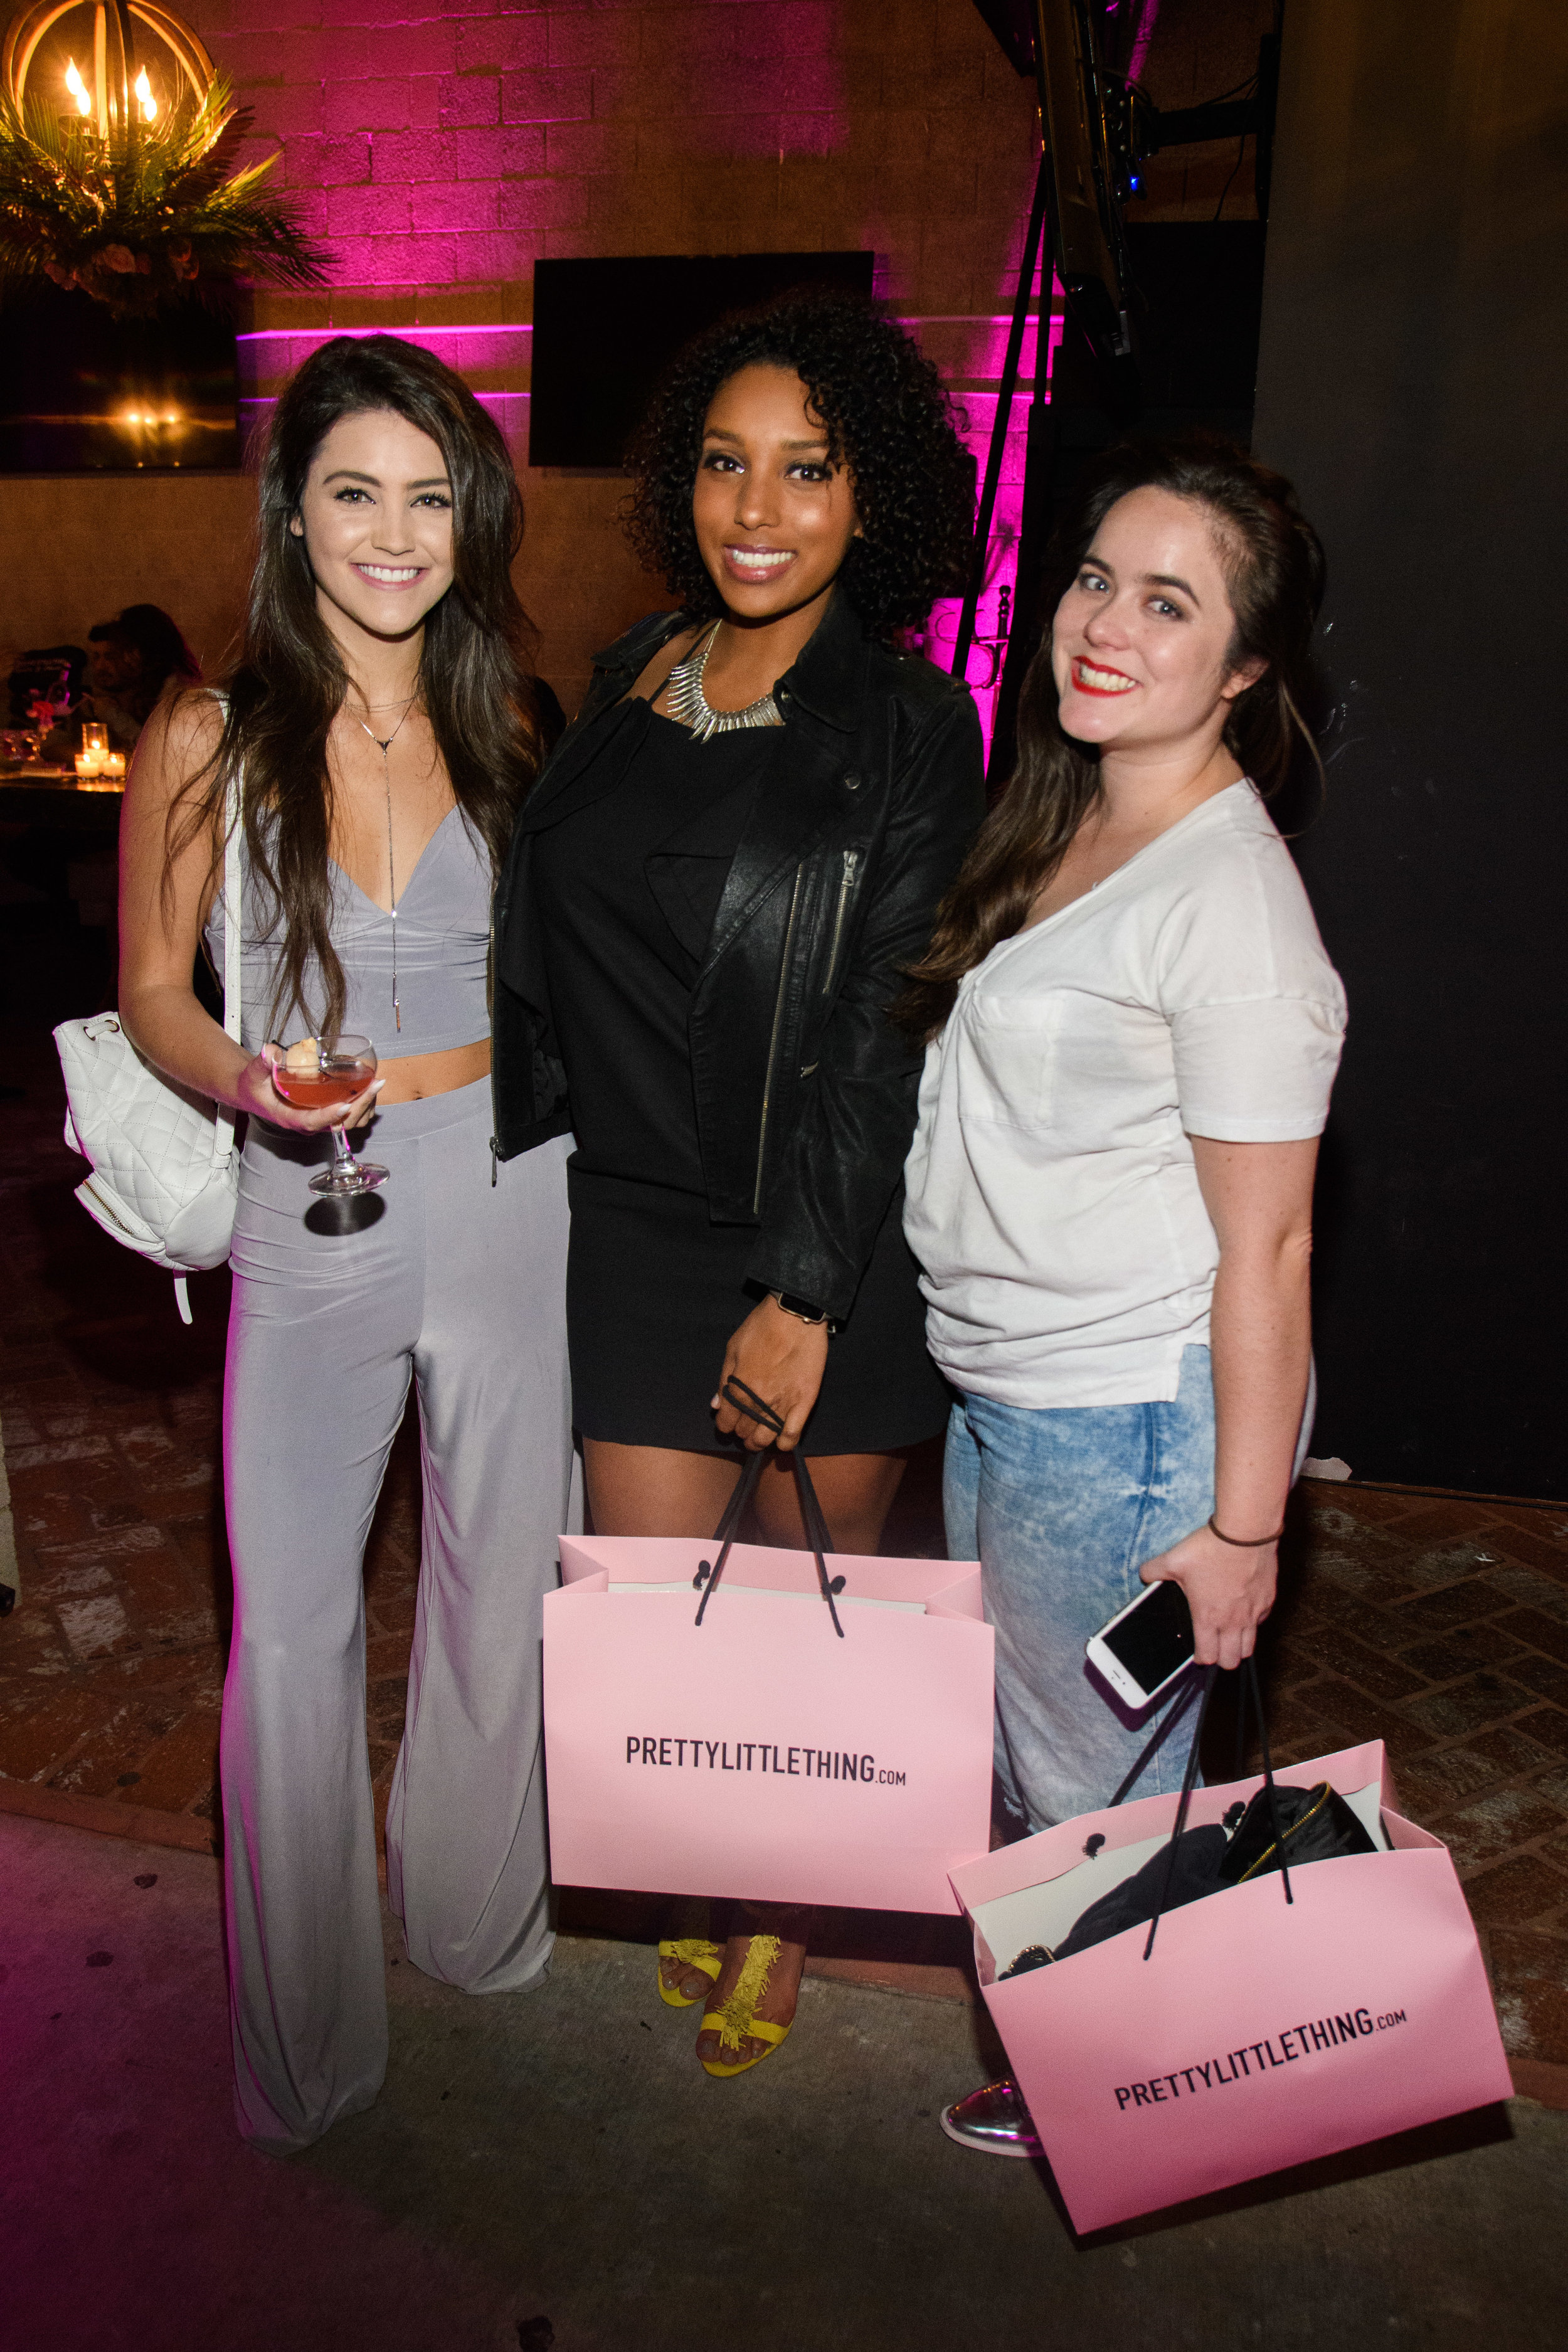 PrettyLittleThing New PLT Shape Collection with Stassie Celebrity Launch Party party guests walked away with bags from the gifting suite.jpg